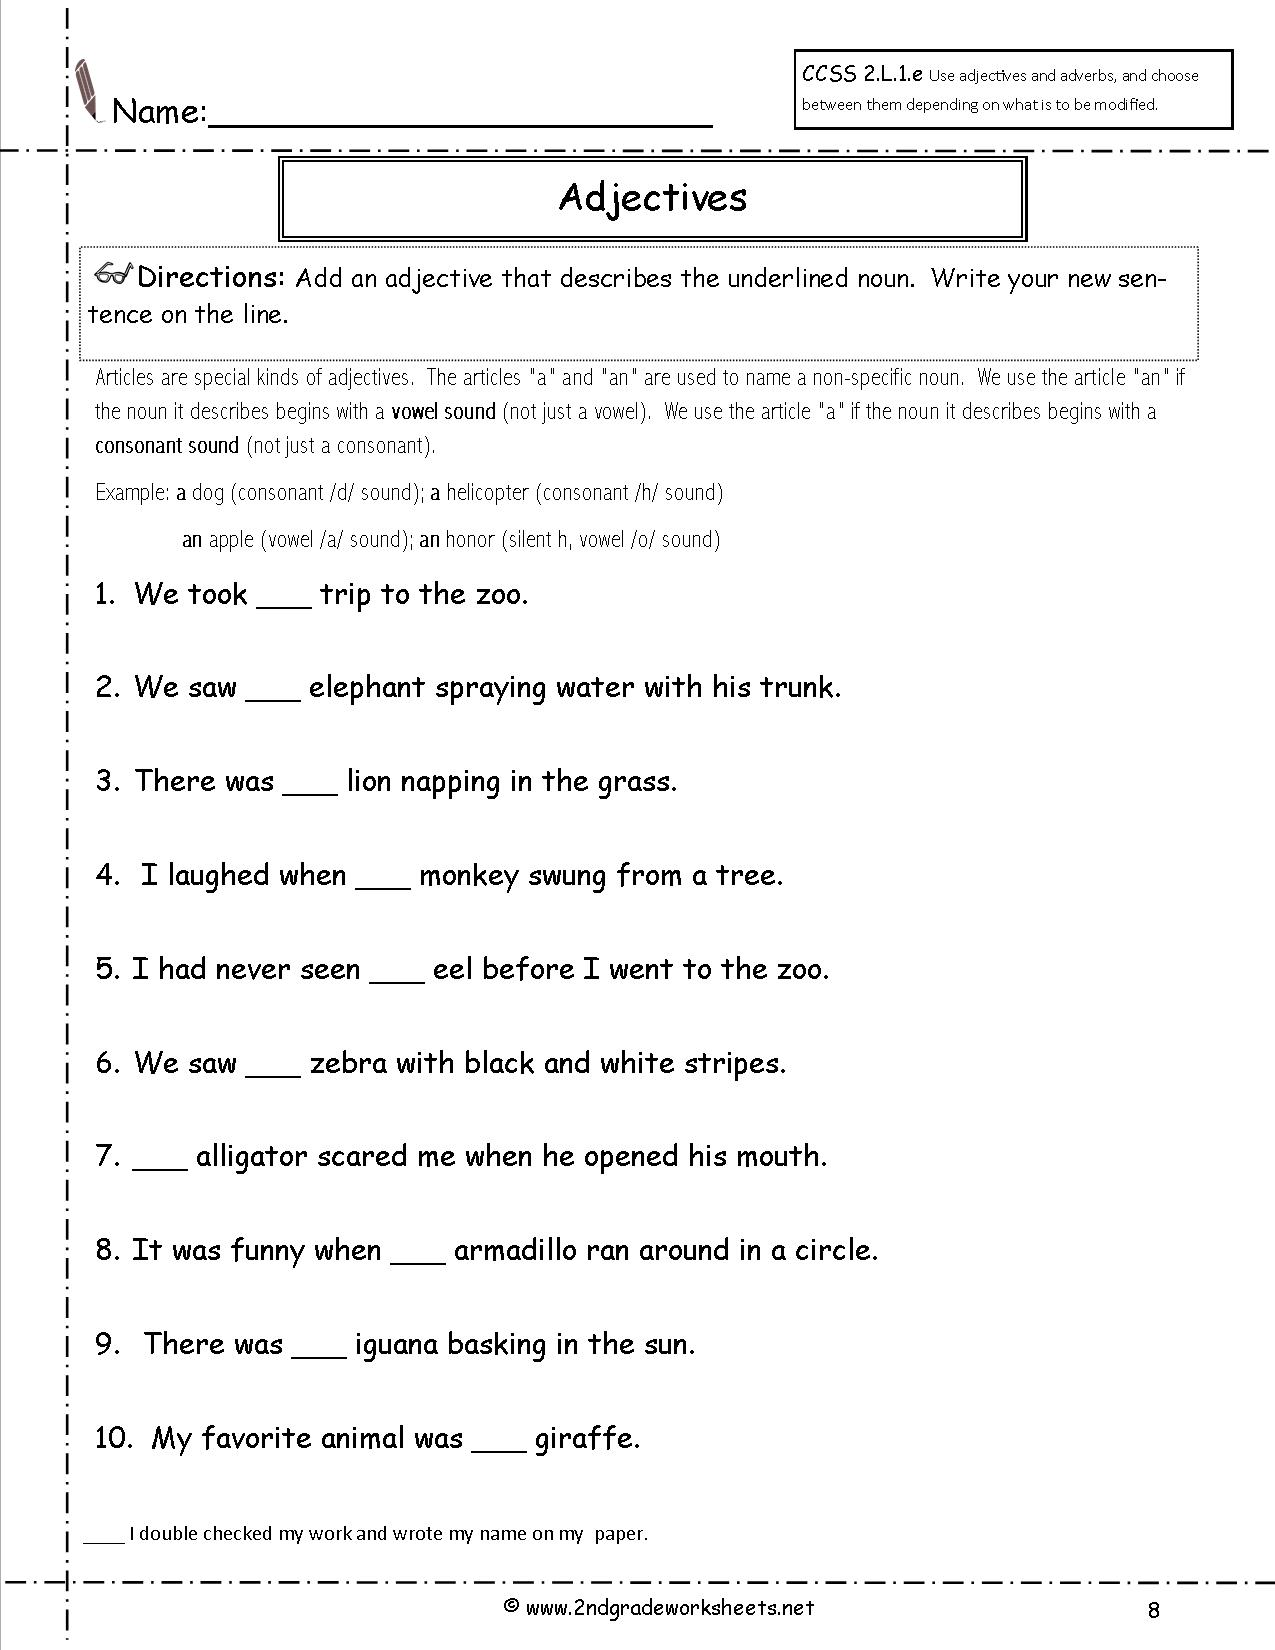 Worksheet Adjectives Exercises Worksheets free using adjectives worksheets a or an worksheet